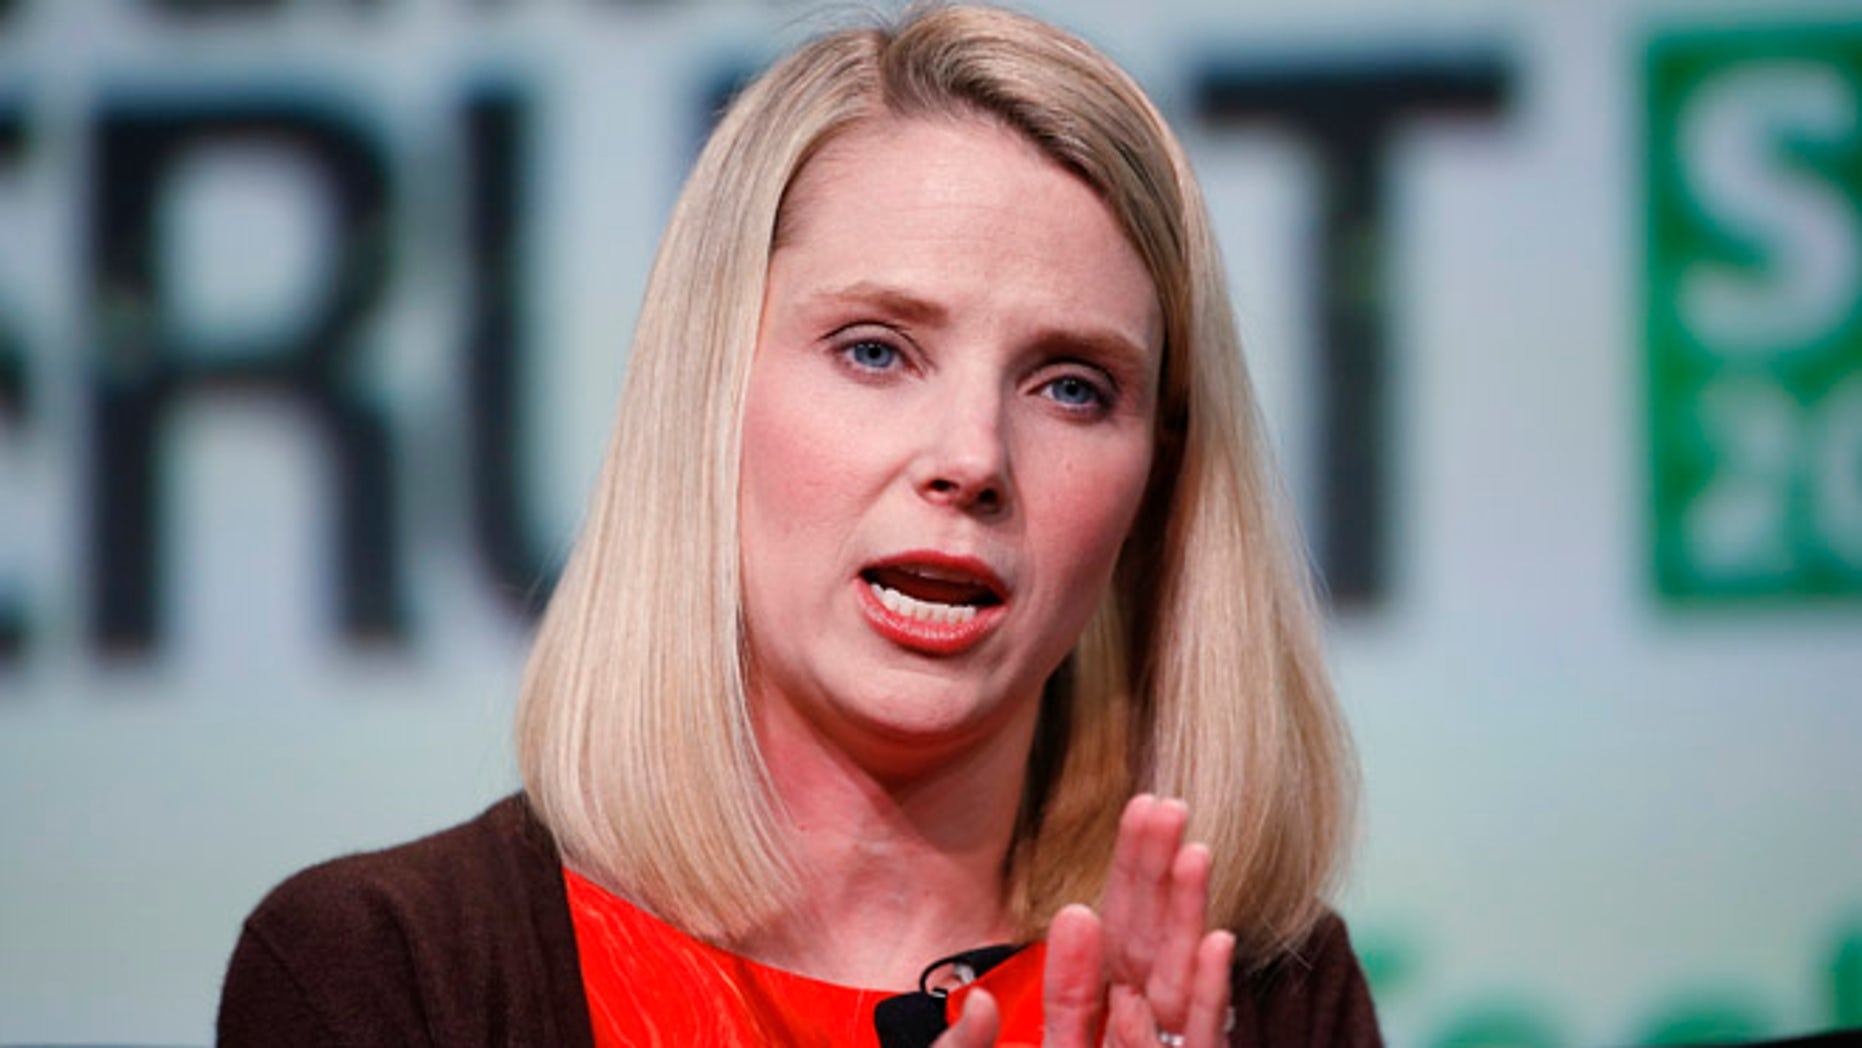 Marissa Mayer, President and CEO of Yahoo, in 2013 in San Francisco